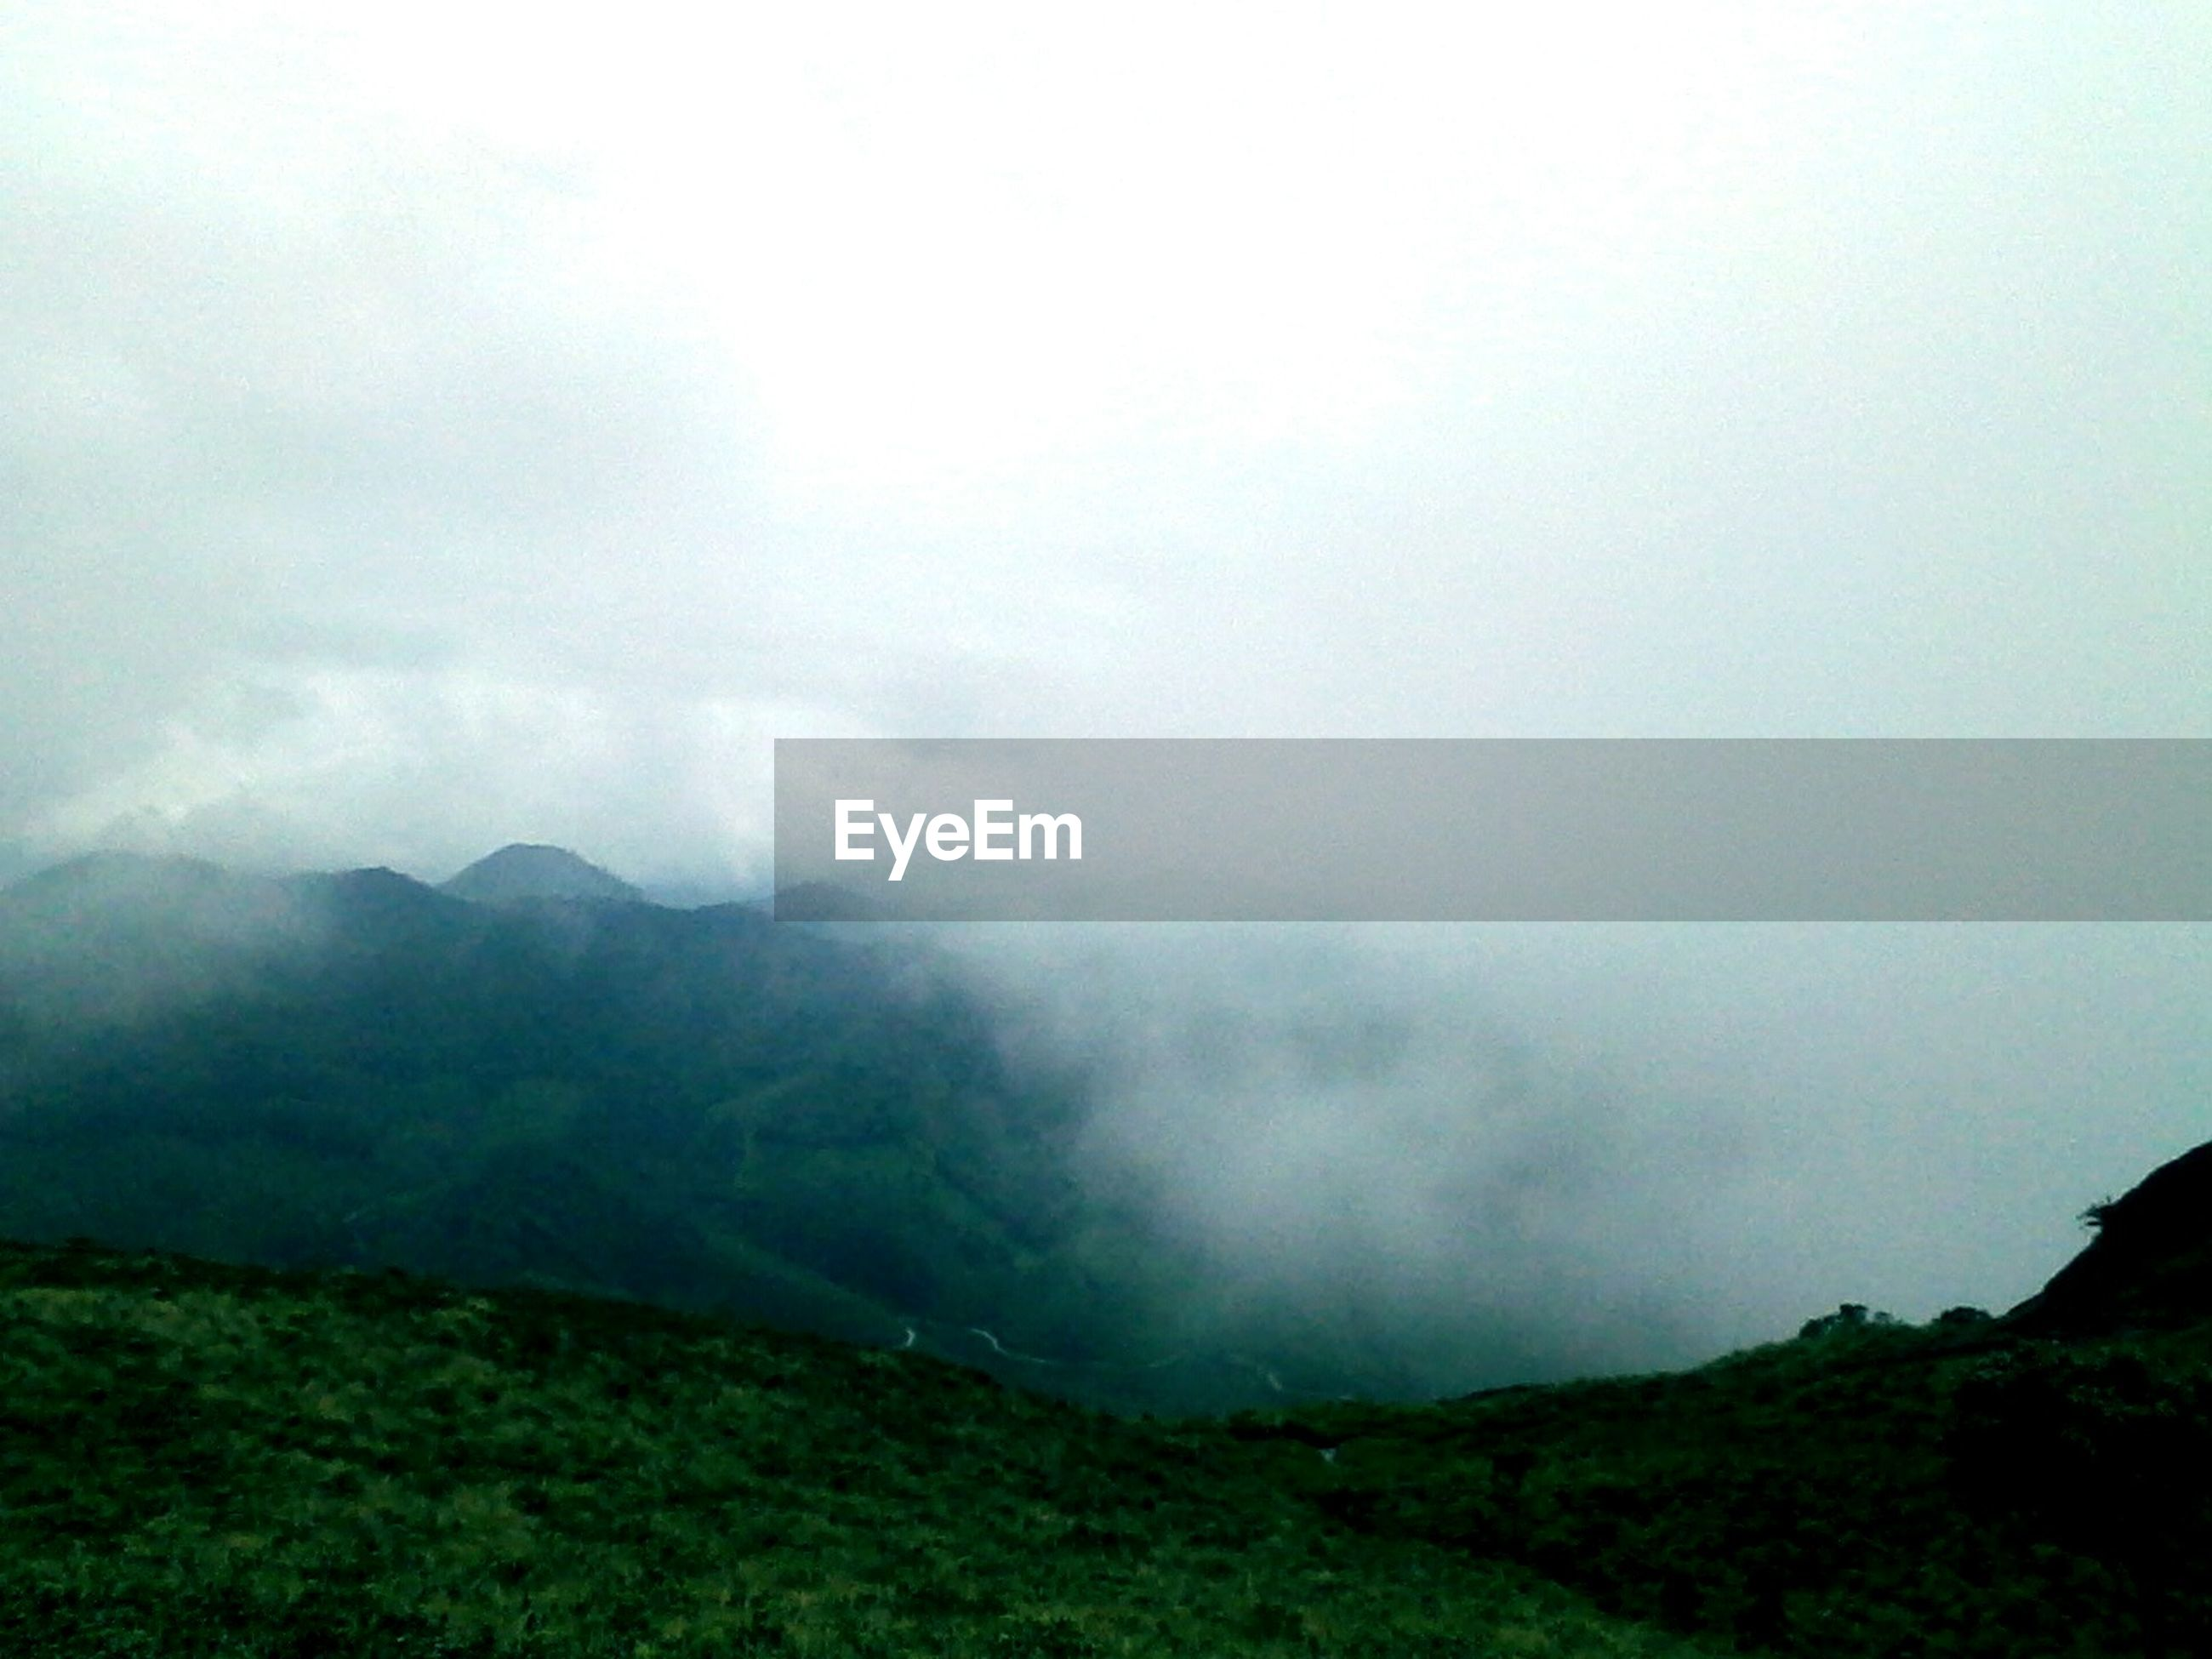 tranquil scene, mountain, scenics, landscape, tranquility, non-urban scene, beauty in nature, nature, fog, remote, sky, idyllic, countryside, green color, solitude, mountain range, tourism, travel destinations, cloud - sky, day, majestic, foggy, outdoors, lush foliage, vacations, atmosphere, dreamlike, physical geography